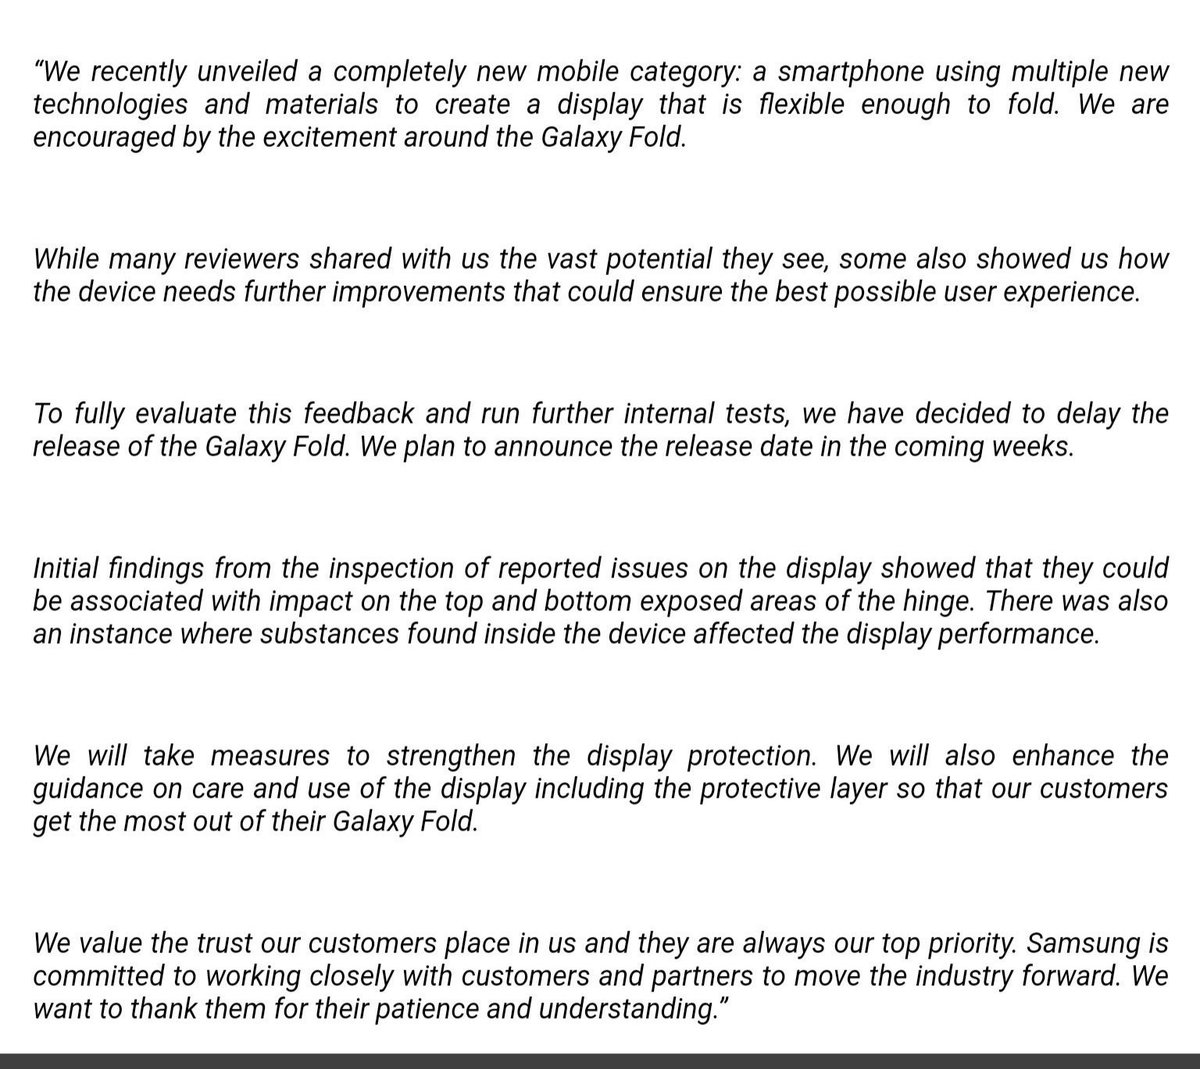 ce7c29a0332 1 5  Samsung is looking into the  GalaxyFold screen issues reported by some  reviewers which is resulting in a release delay.pic.twitter.com NmIfzHgv5f